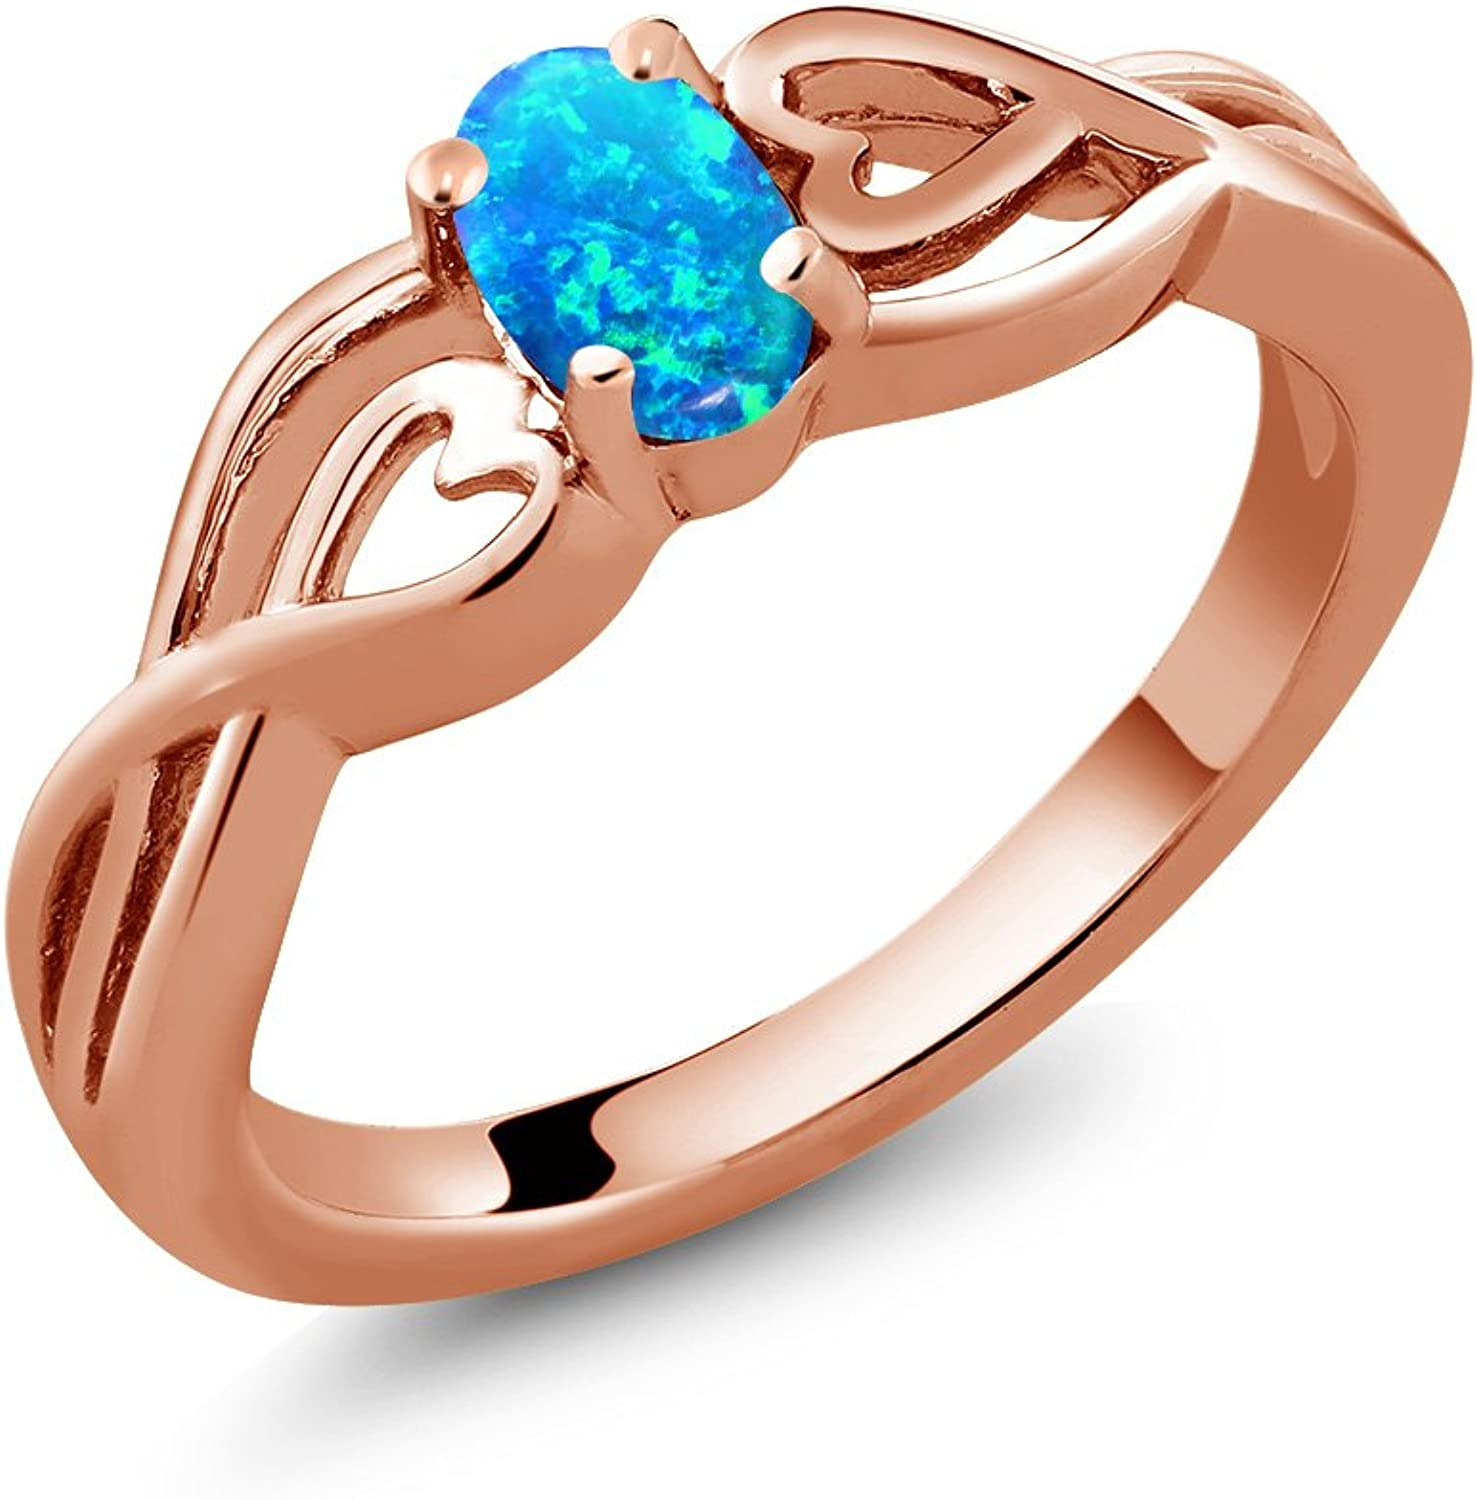 Gem Stone King 0.50 Ct Oval Cabochon bluee Simulated Opal 18K pink gold Plated Silver Ring (Available 5,6,7,8,9)